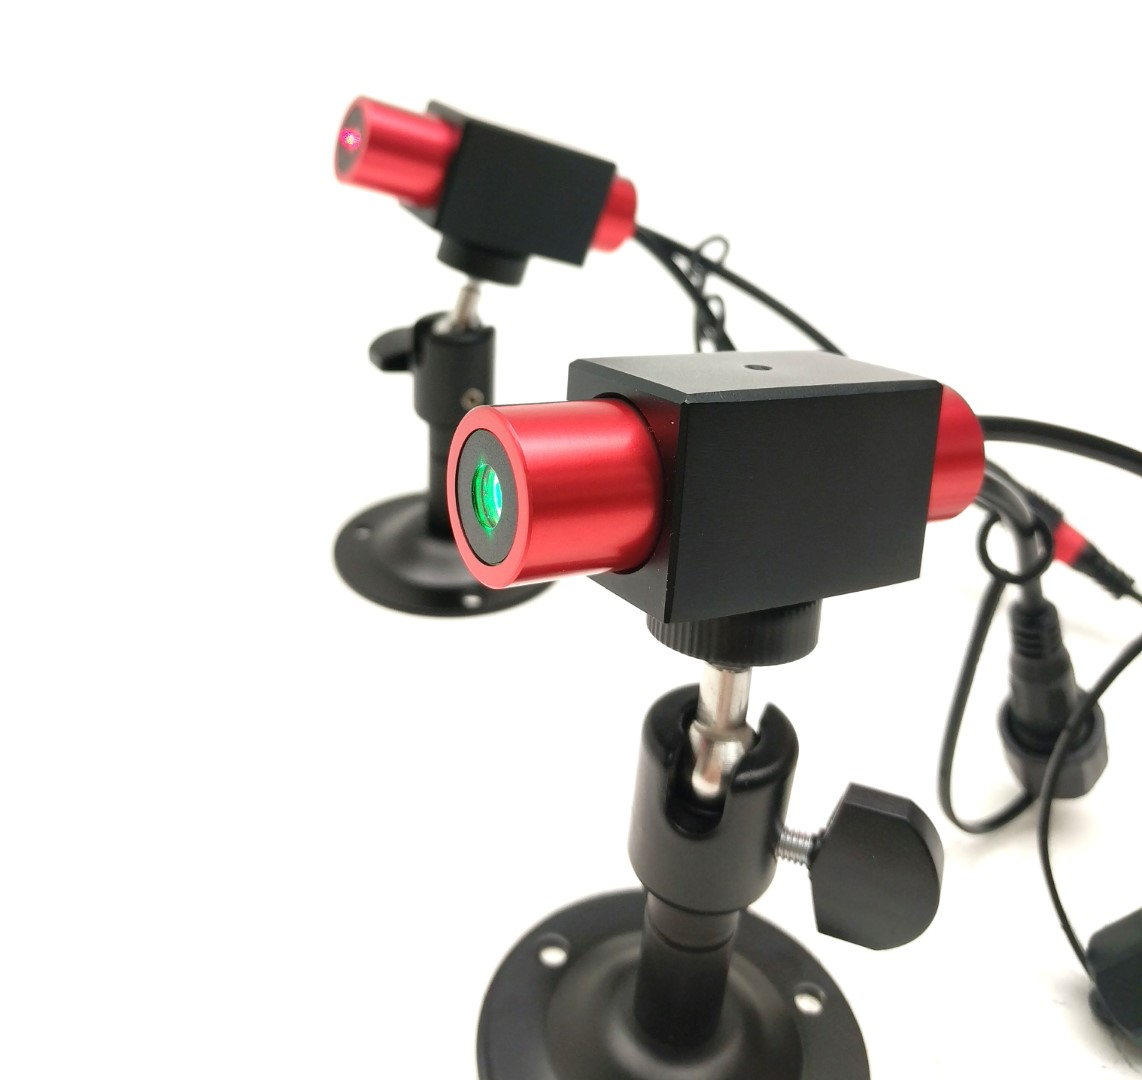 60 mW 635 nm Red Premium Structured Cross laser, 62° fan angle, adjustable focus, TTL+, Sealed IP67